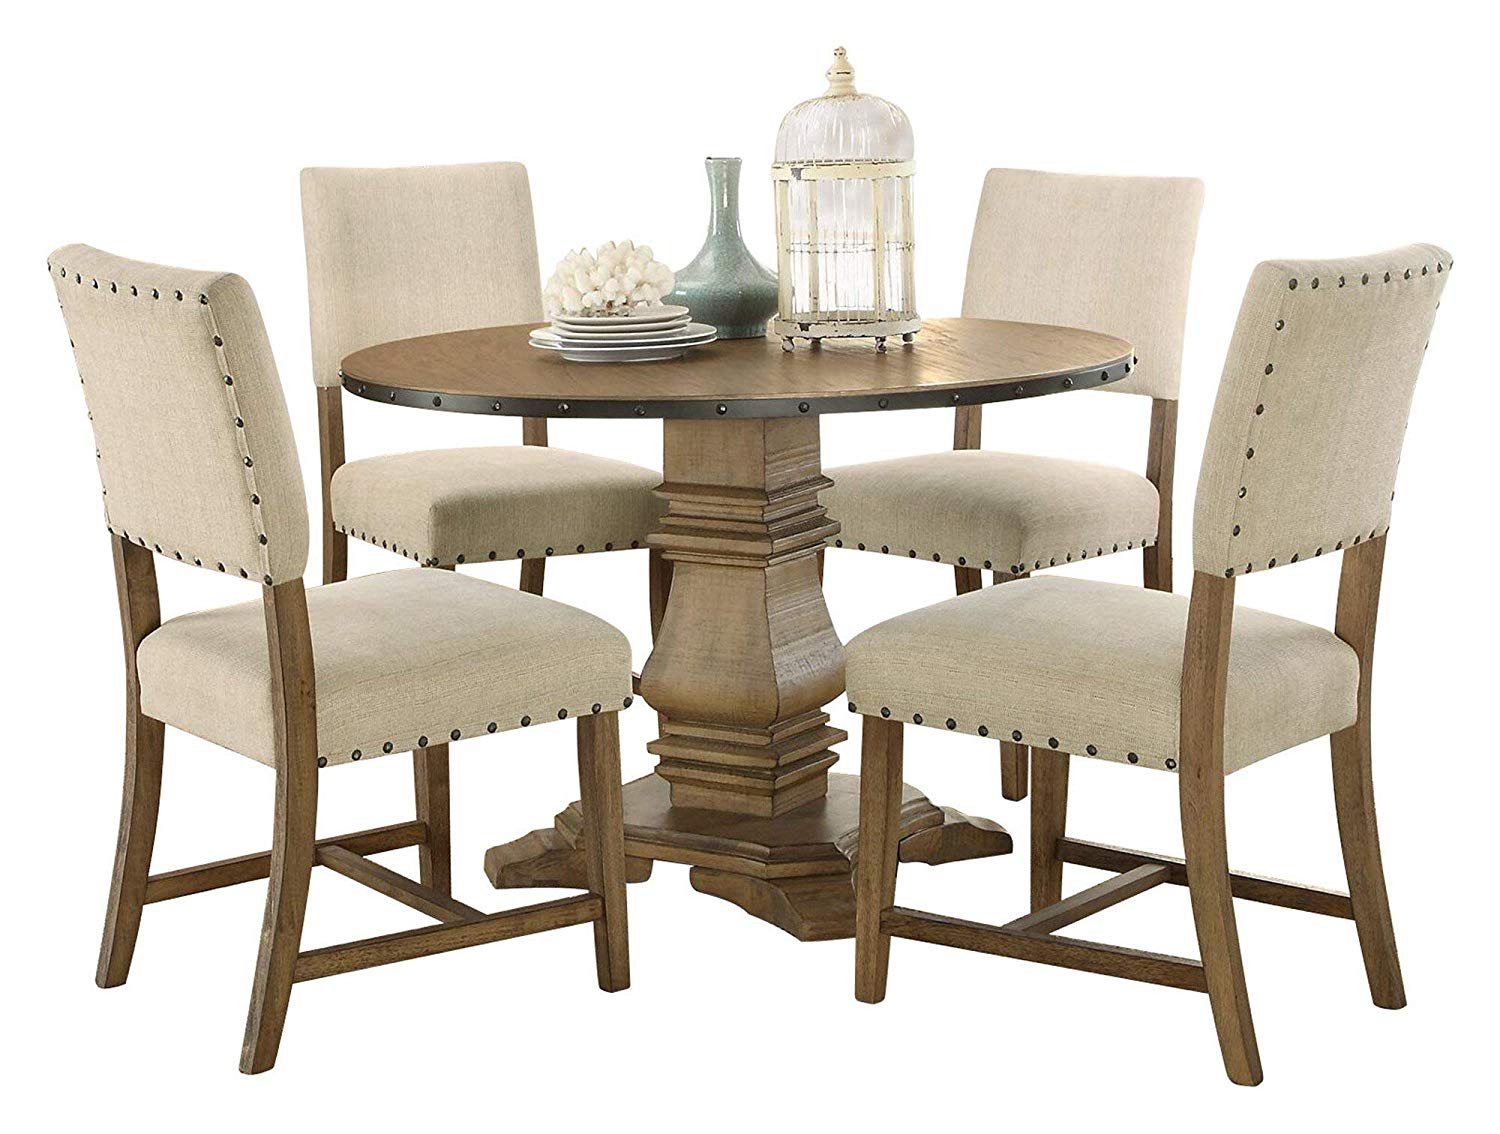 Vanasco Industrial 5PC Dining Set Round Pedestal Table, 4 Chair in Rustic Weathered Wood